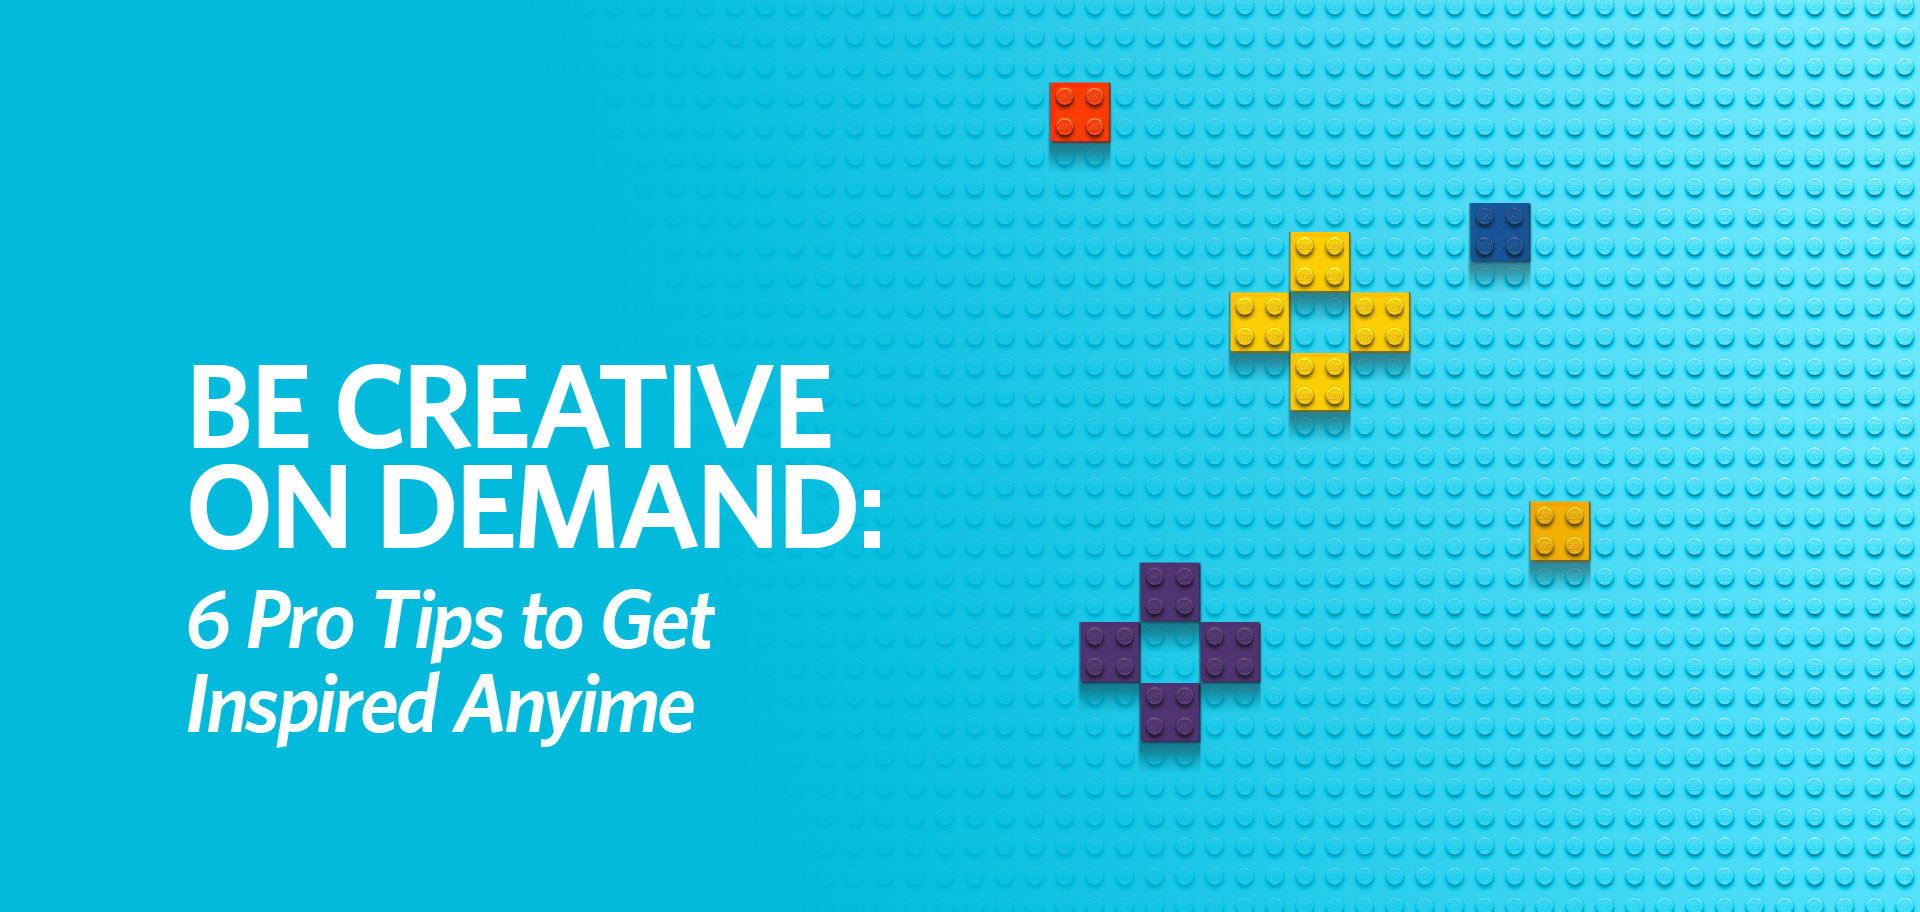 Be Creative on Demand: 6 Pro Tips to Get Inspired Anytime by Kettle Fire Creative. creative Be Creative on Demand: 6 Pro Tips to Get Inspired Anytime creativity inspiration fi